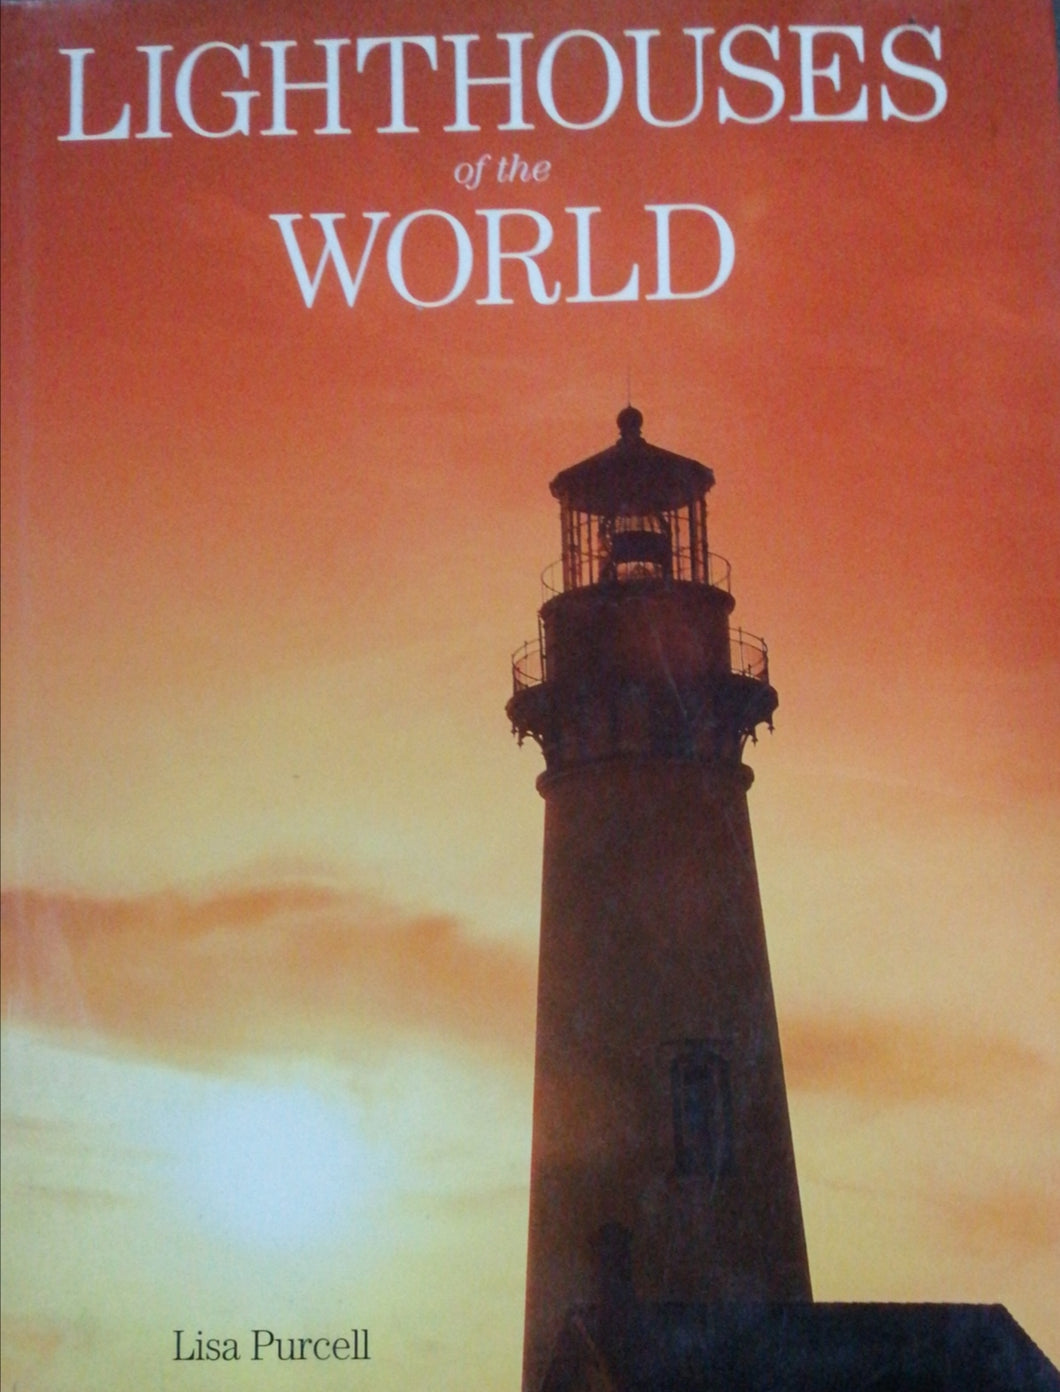 Lighthouses of the World by: Lisa Purcell